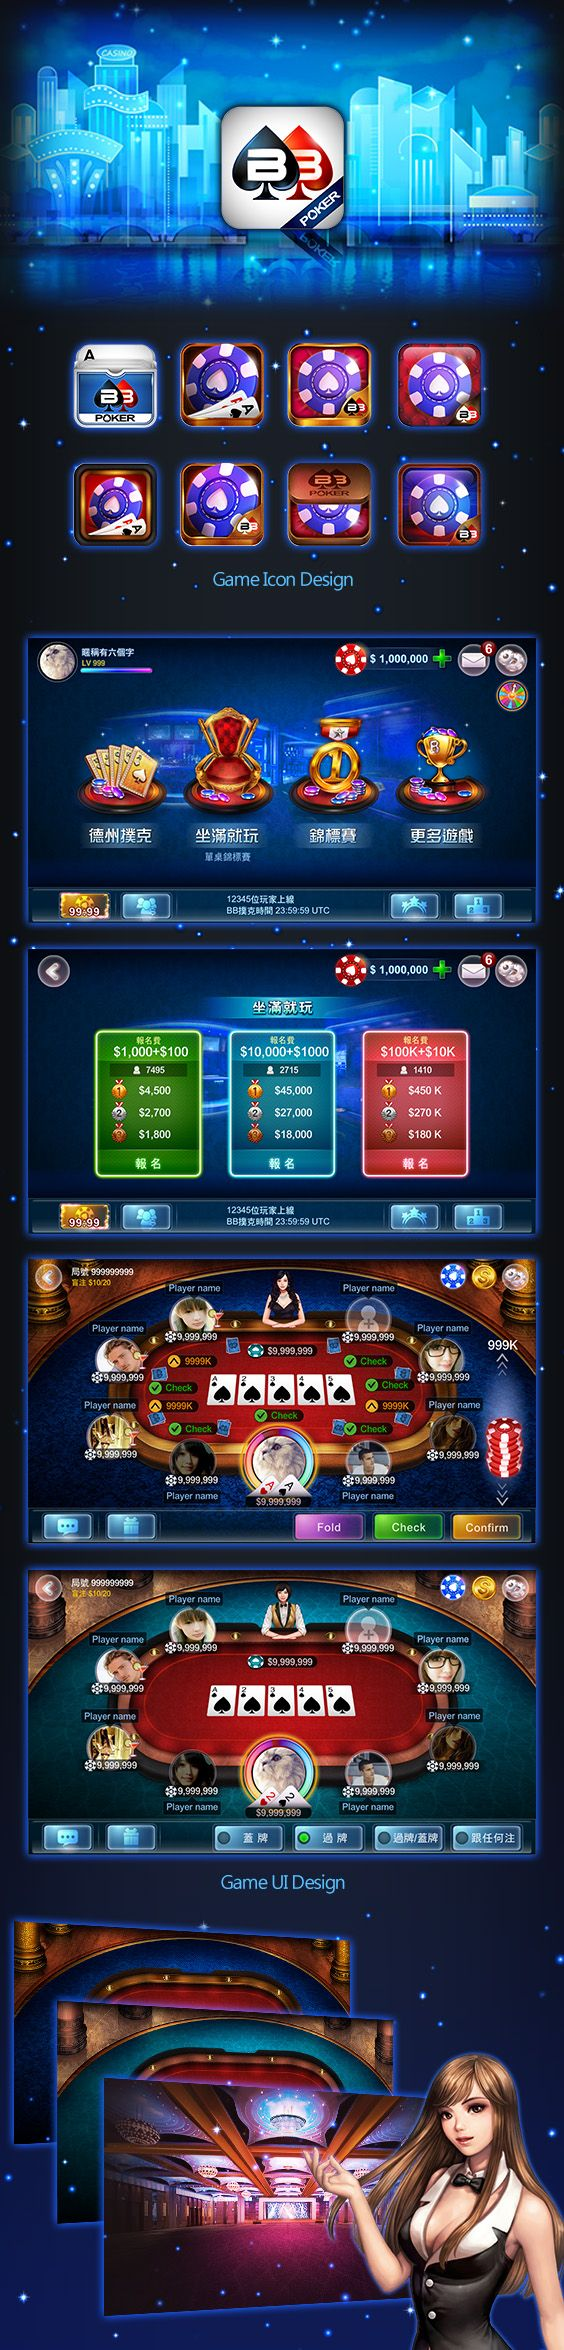 Game ui / Texas Holdem Poker Design #App